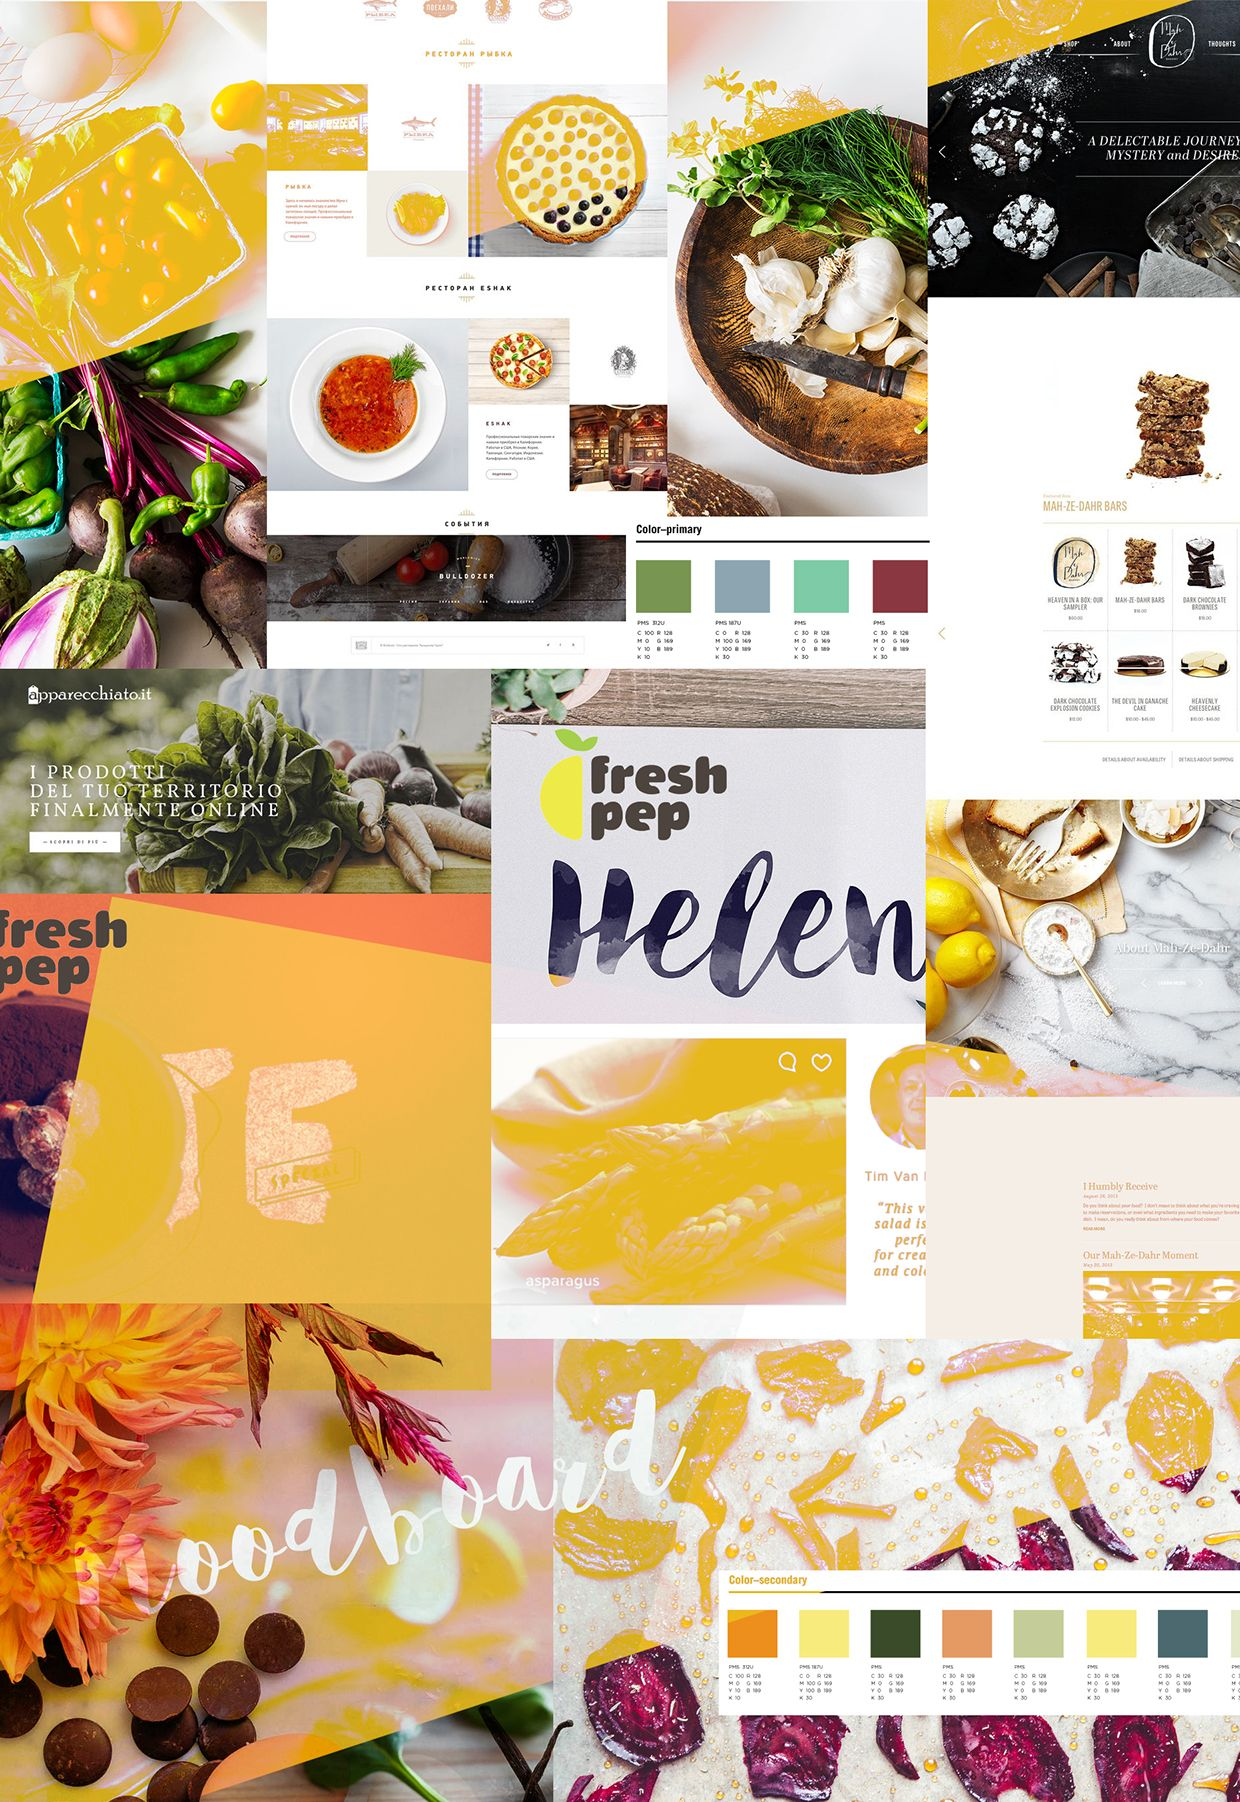 Pin by mecagd halverson on moodboards Organic food